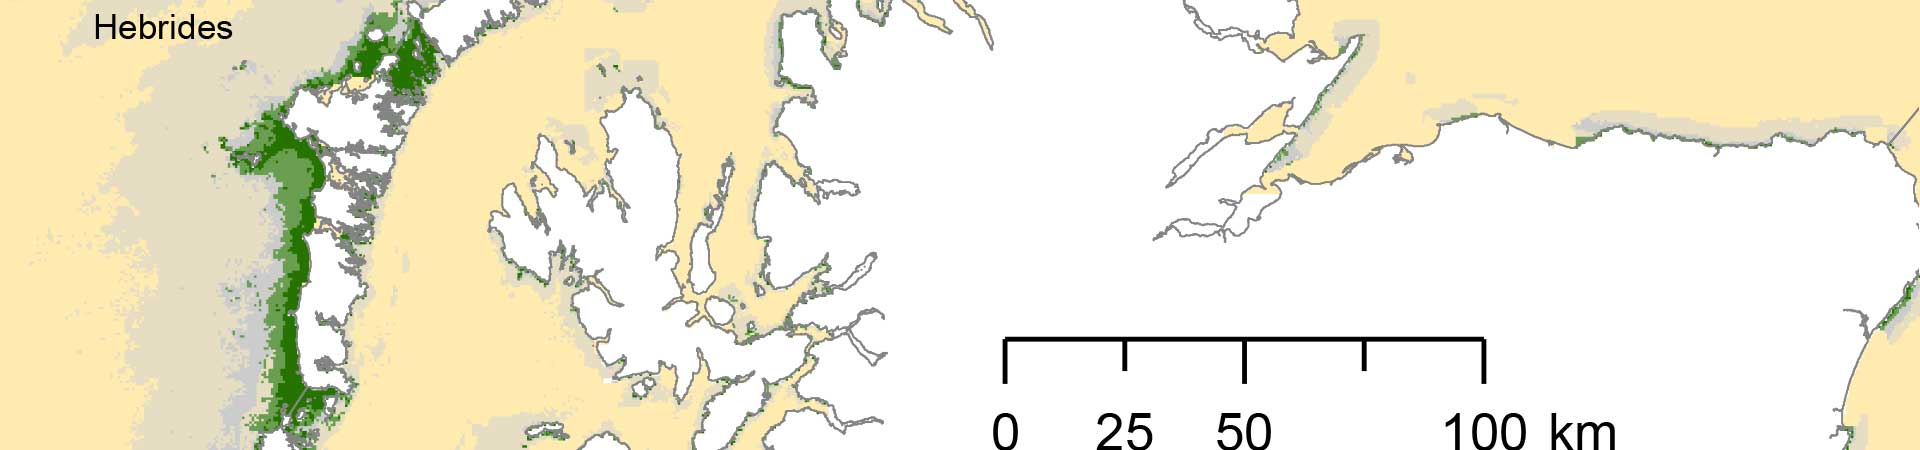 Map showing rates of kelp carbon assimilation around Scotland's coast